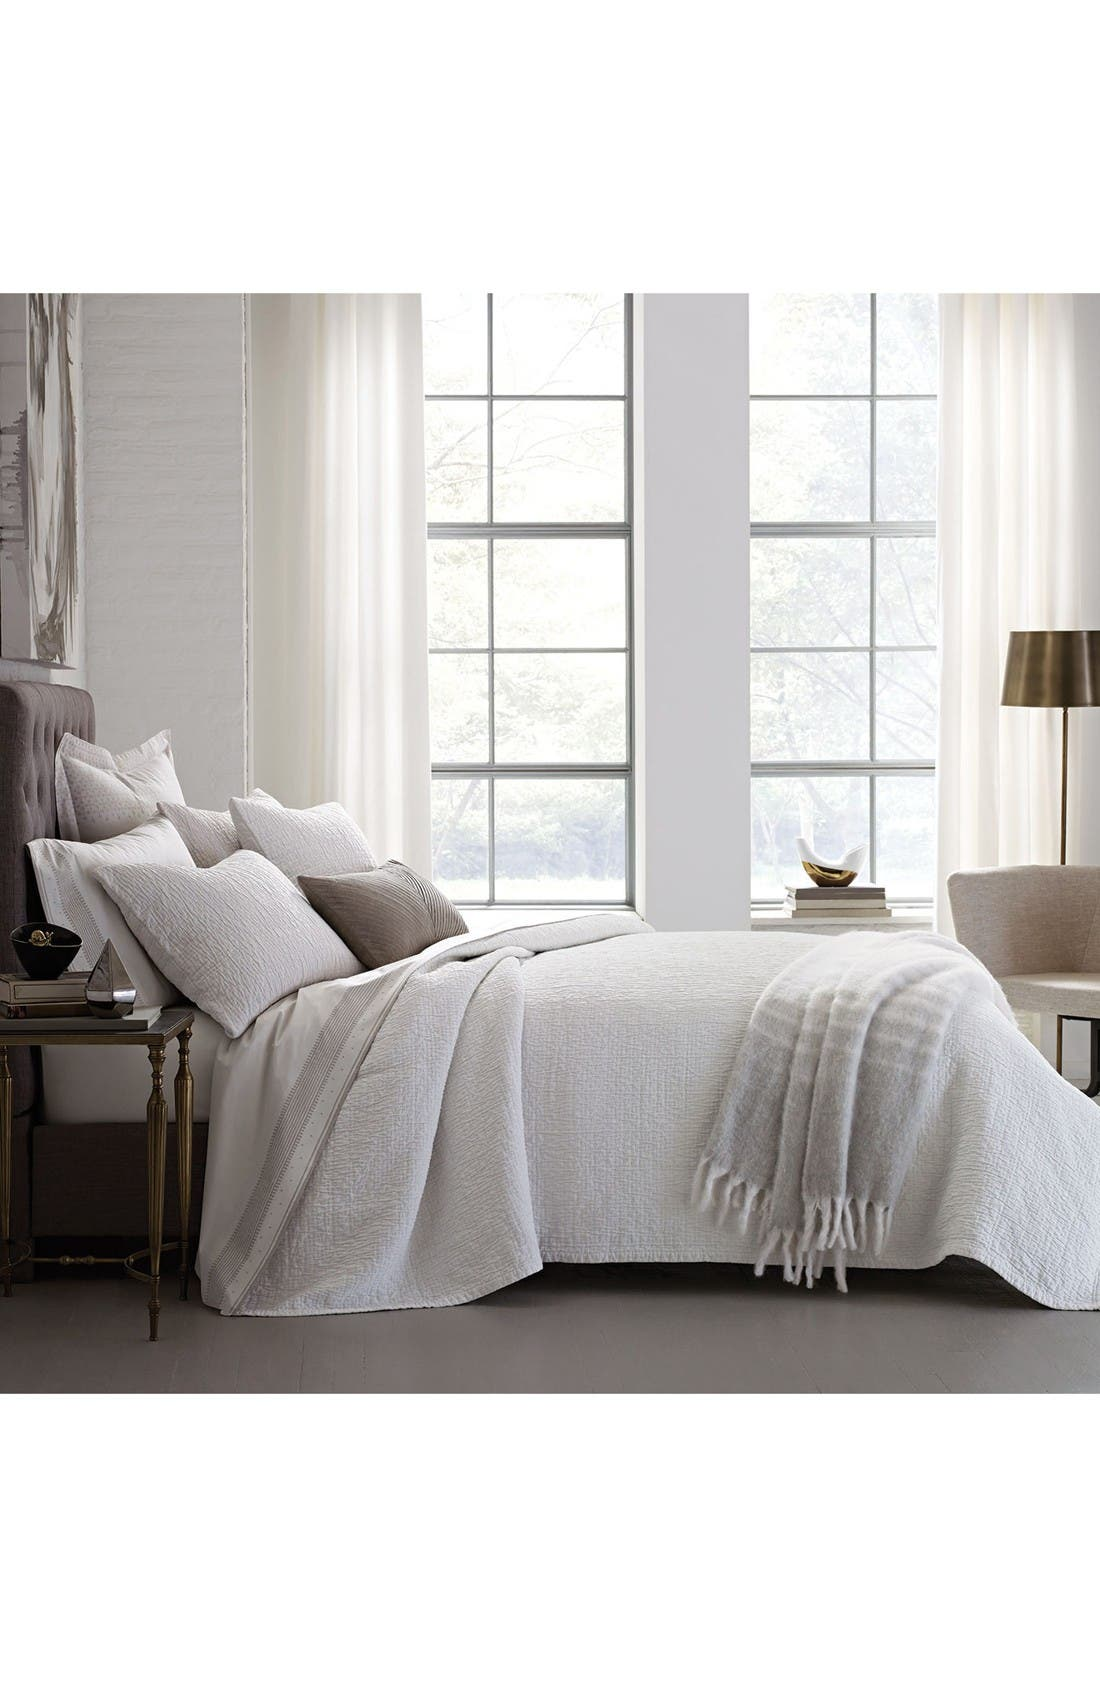 DwellStudio Woodgrain Matelassé Bedding Collection